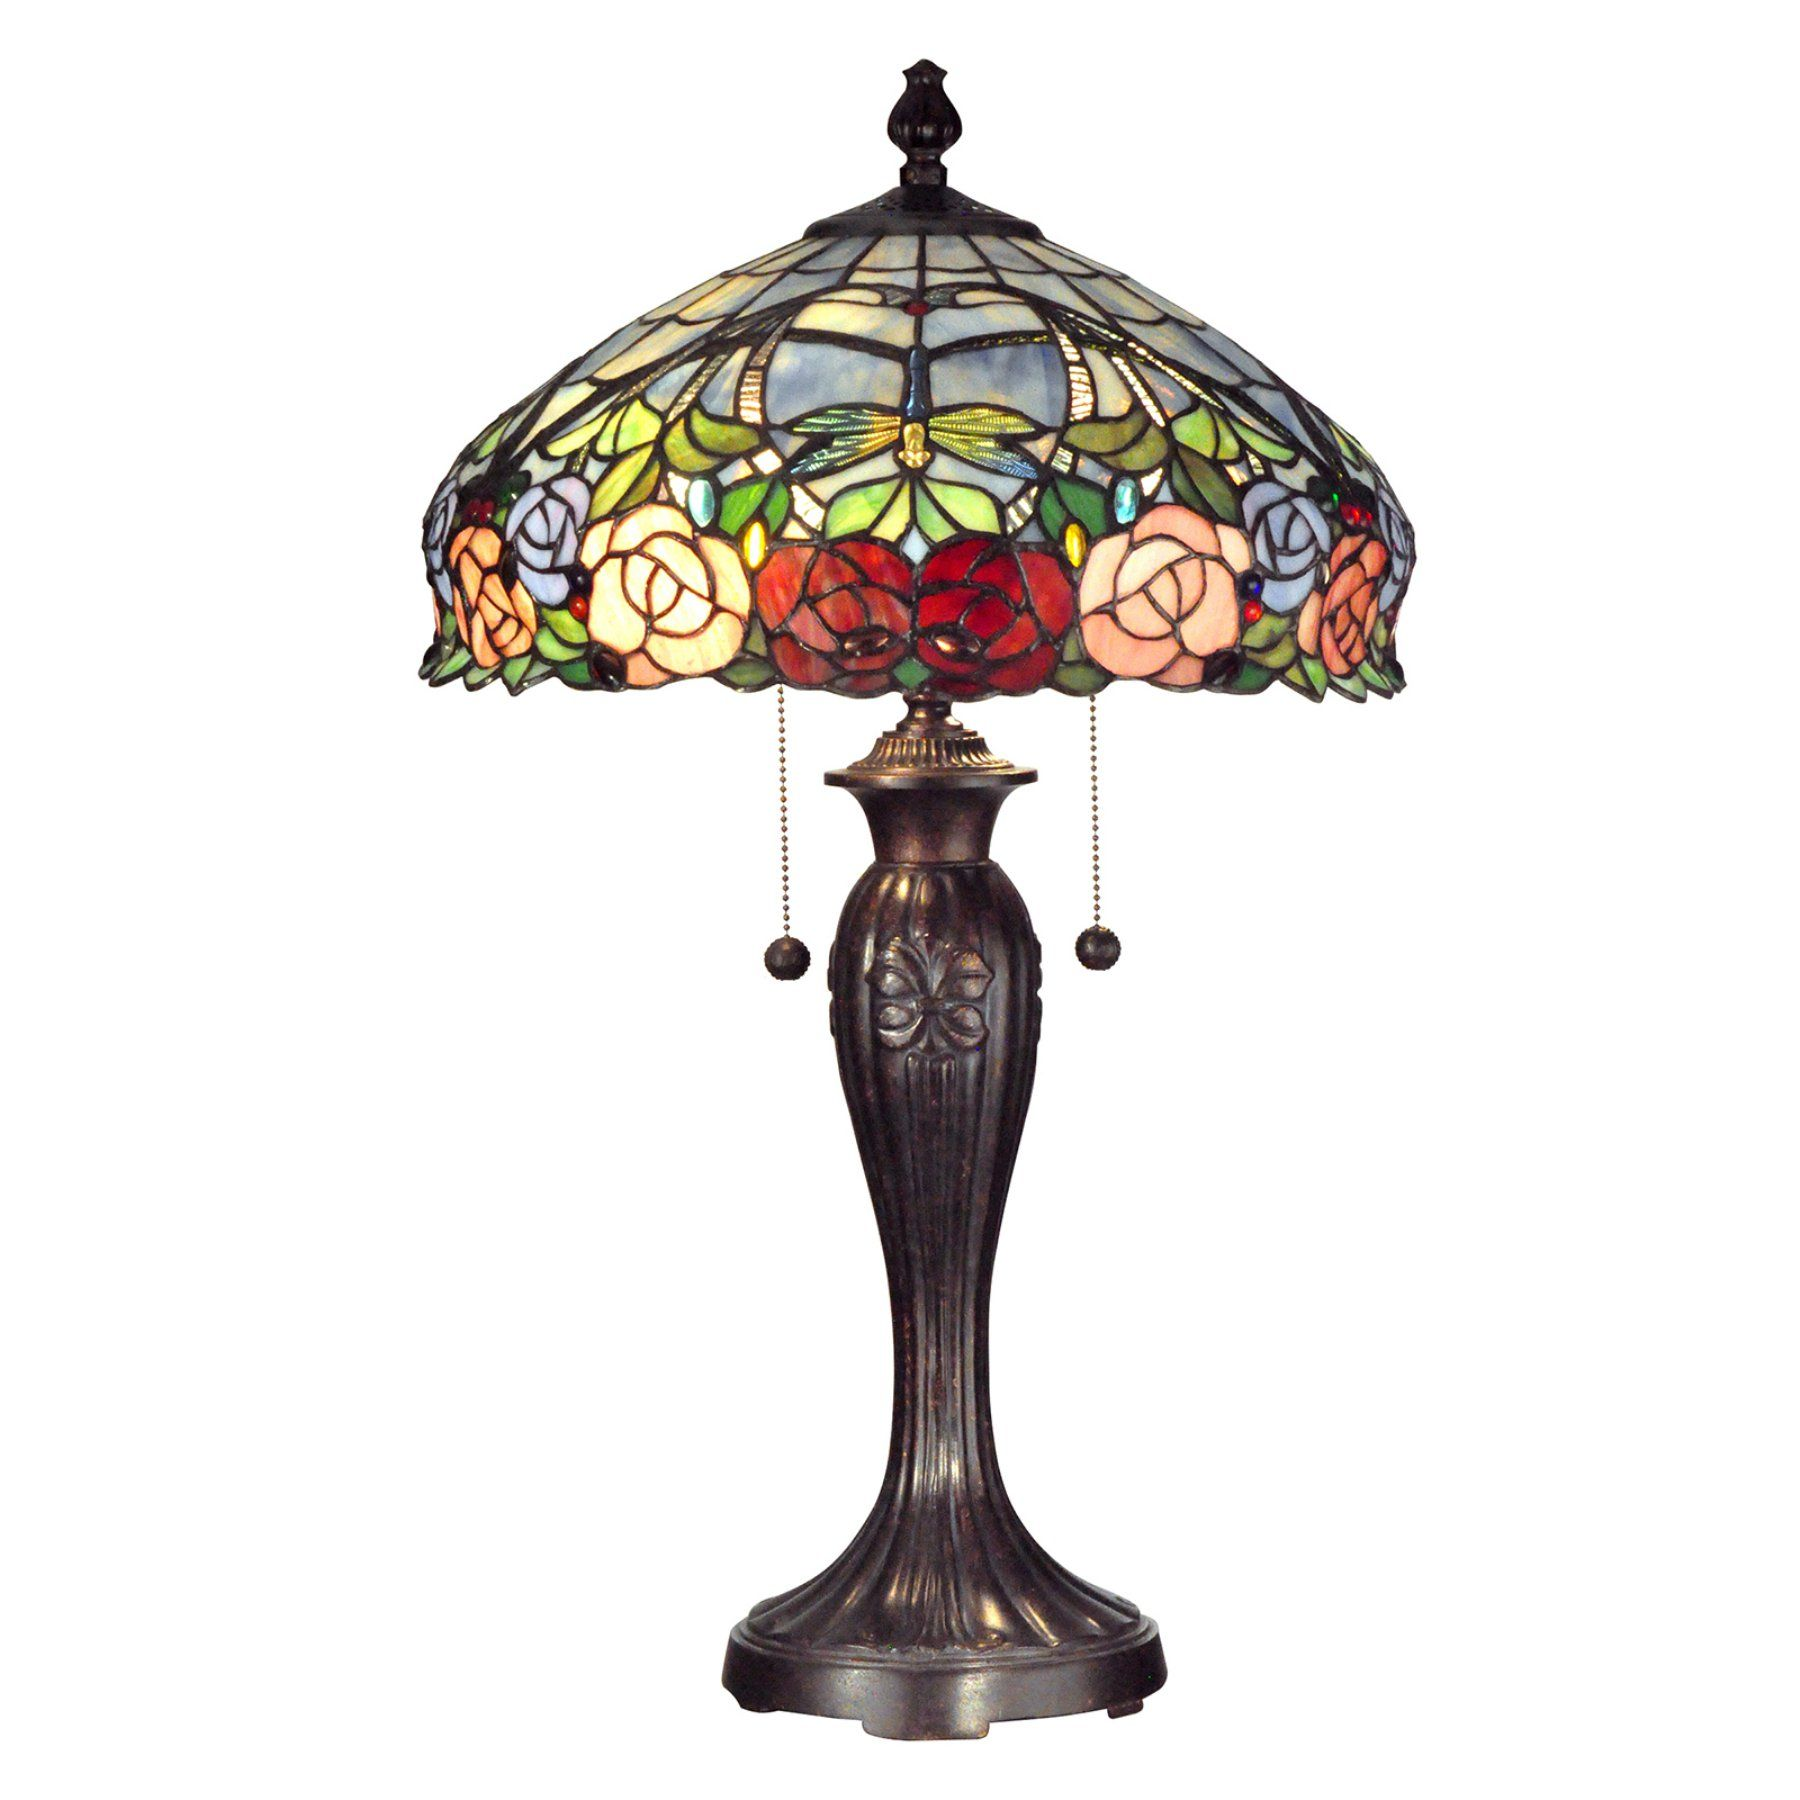 Dale tiffany floor lamps foter - 16 Antique Bronze Rose Dome Hand Painted Art Glass Table Lamp From The Dale Tiffany Collection This Lamp Is The Perfect Choice For Any Room Or Sp